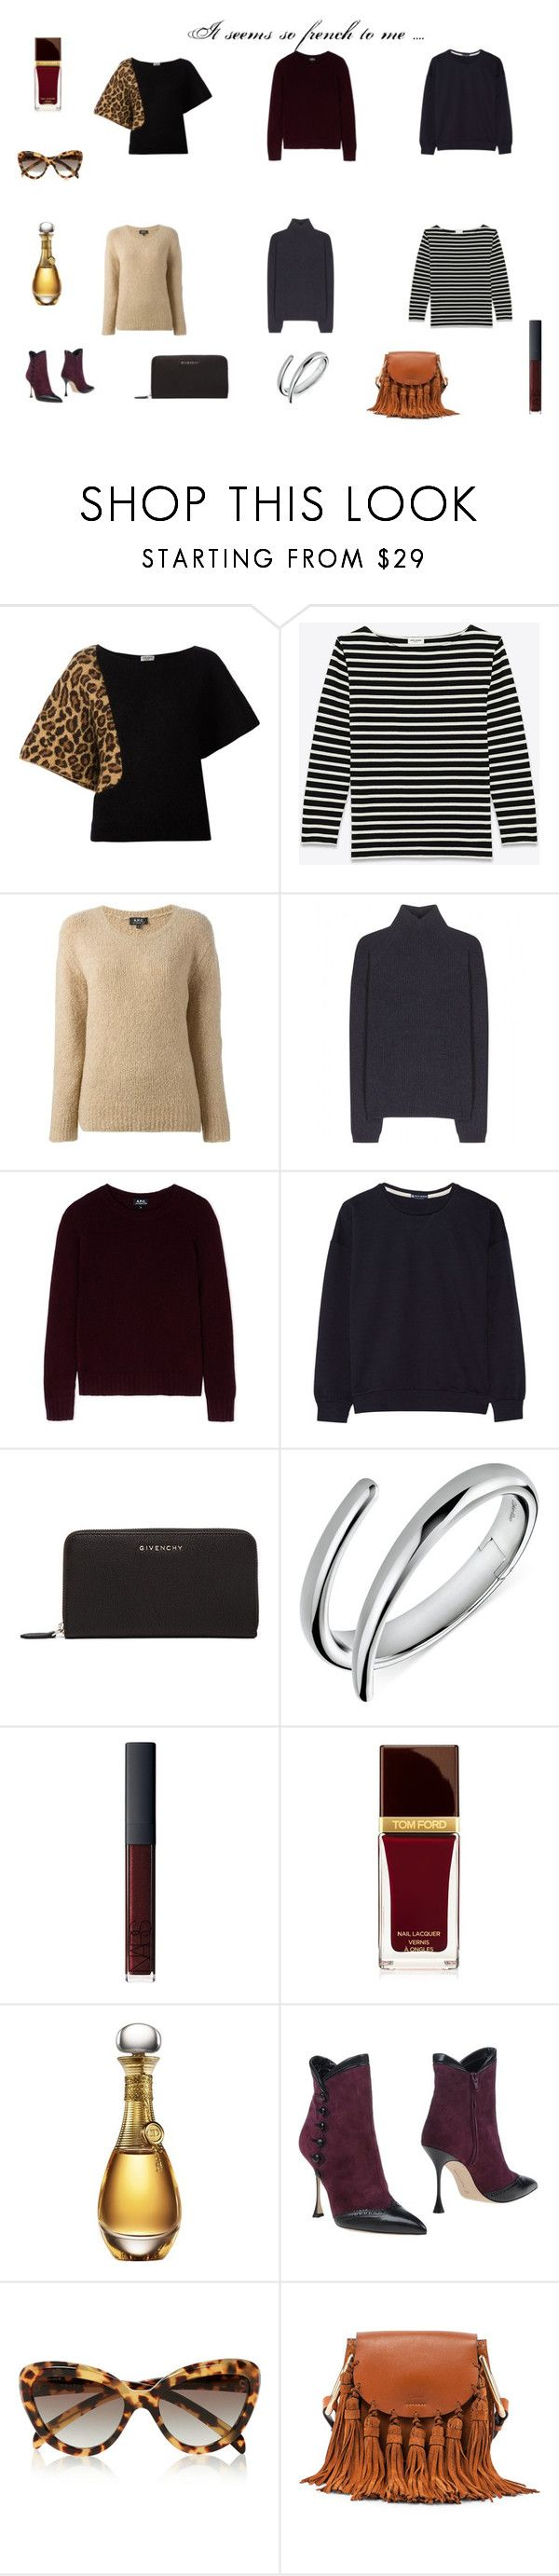 """""""It seems so french to me ...."""" by mousouza on Polyvore featuring Yves Saint Laurent, A.P.C., Petit Bateau, Givenchy, Calvin Klein, NARS Cosmetics, Tom Ford, Christian Dior, Manolo Blahnik and Prada"""